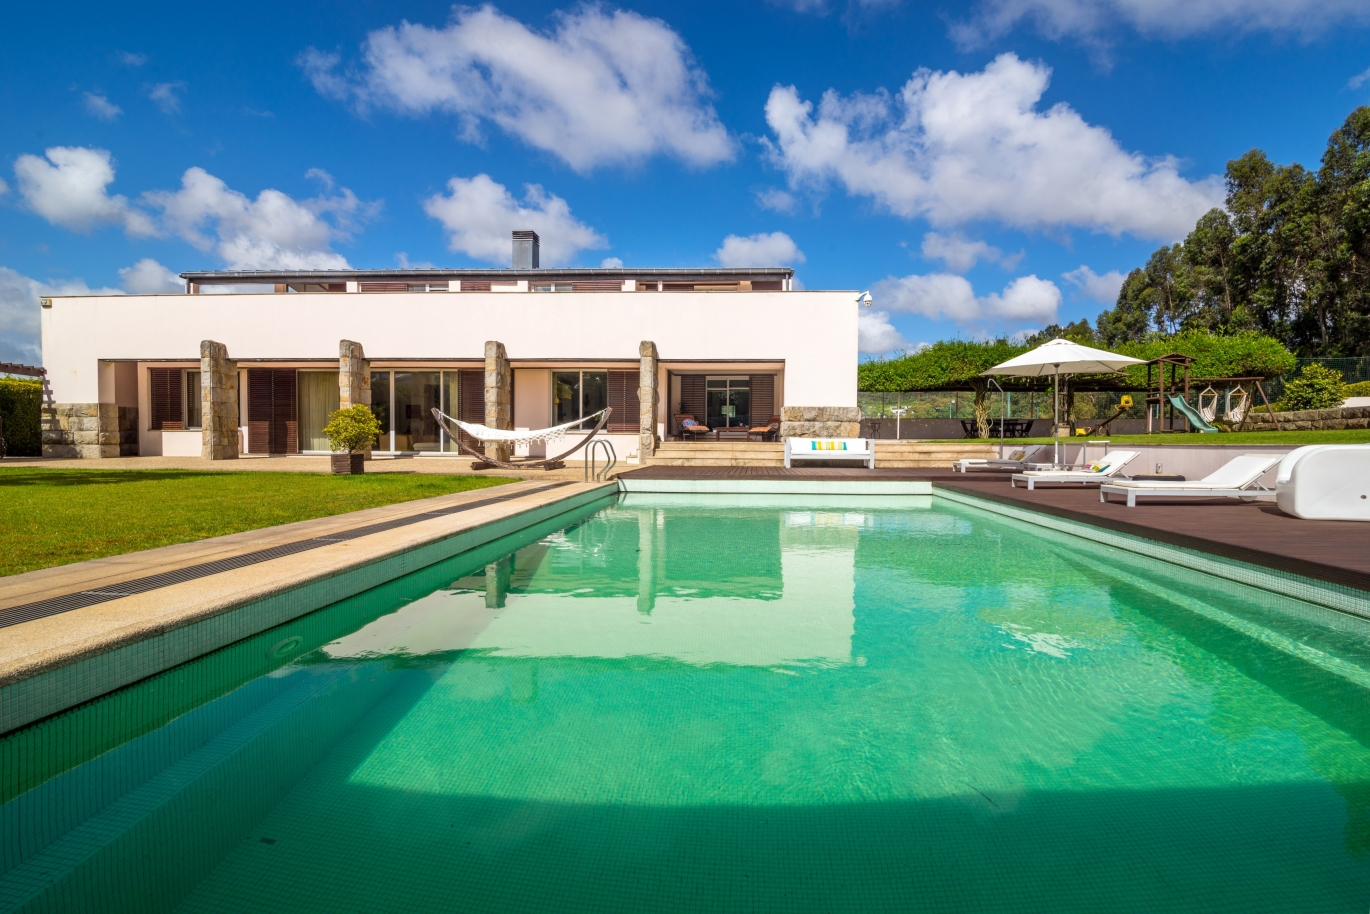 sale-of-contemporary-luxury-villa-with-pool-and-garden-trofa-portugal